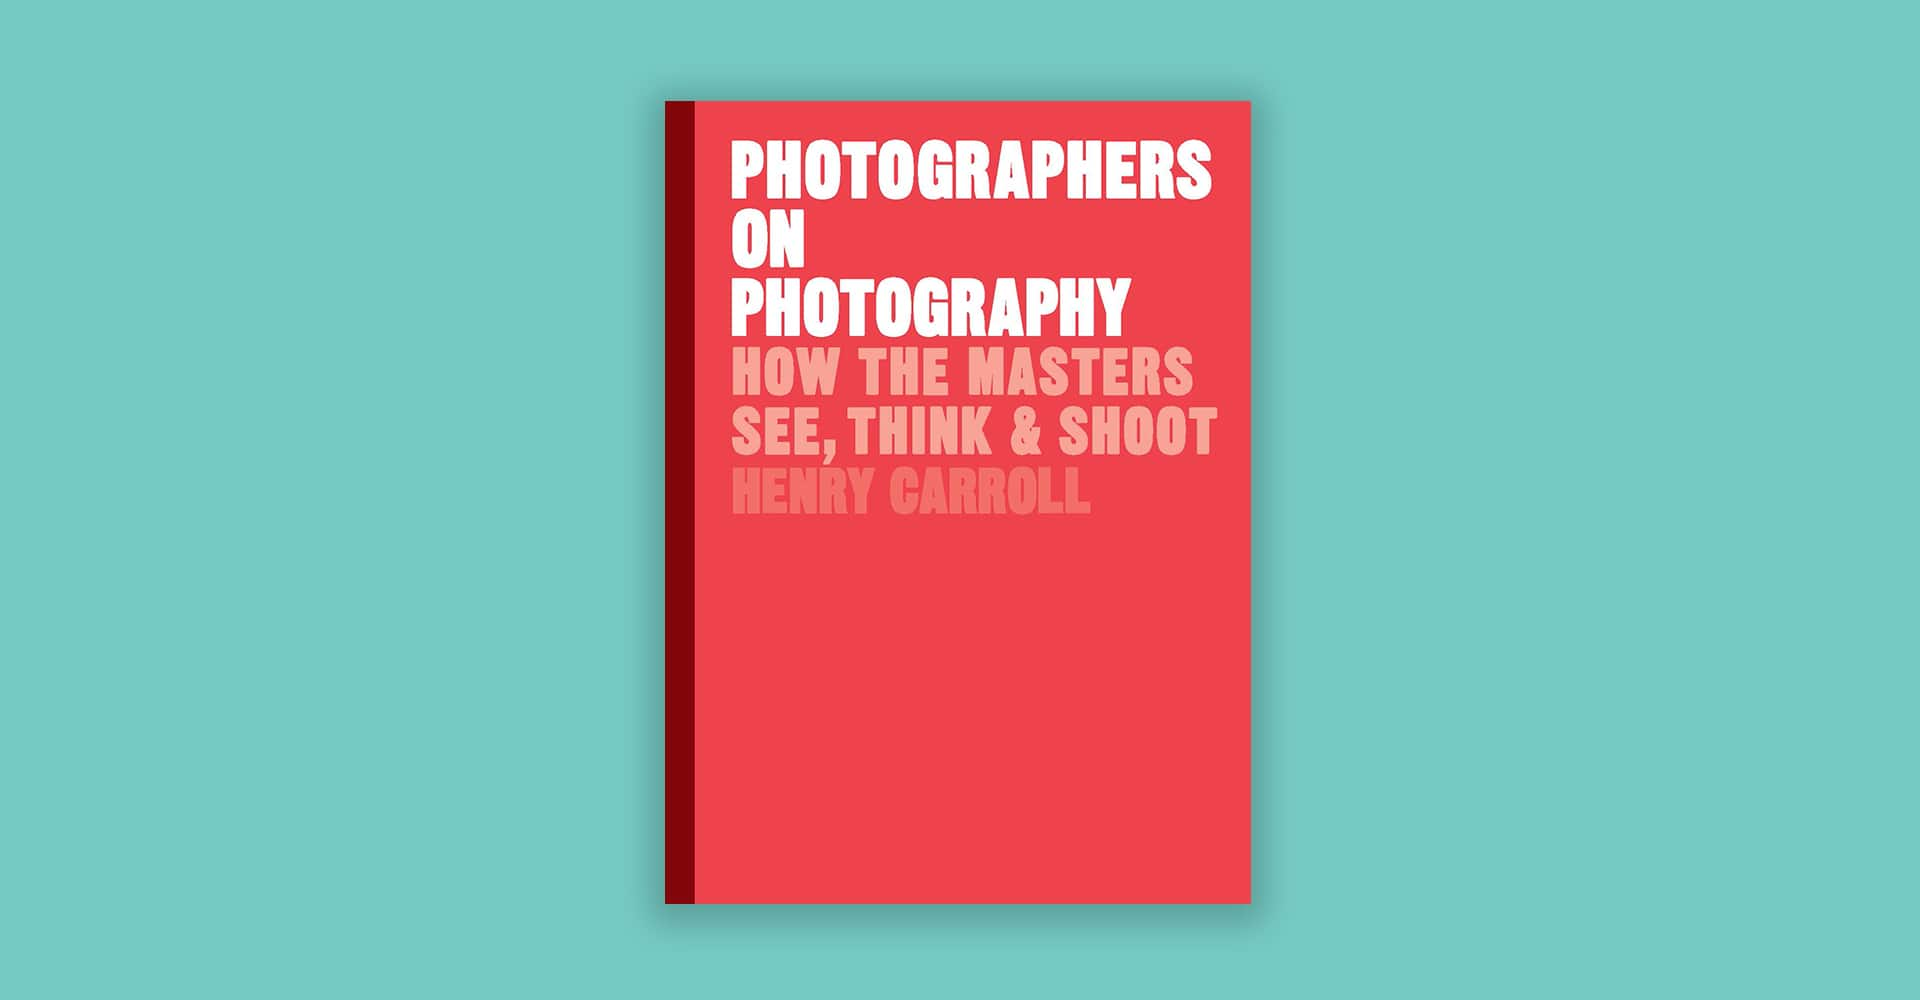 Photographers on Photography: How the Masters See, Think & Shoot – Henry Carroll